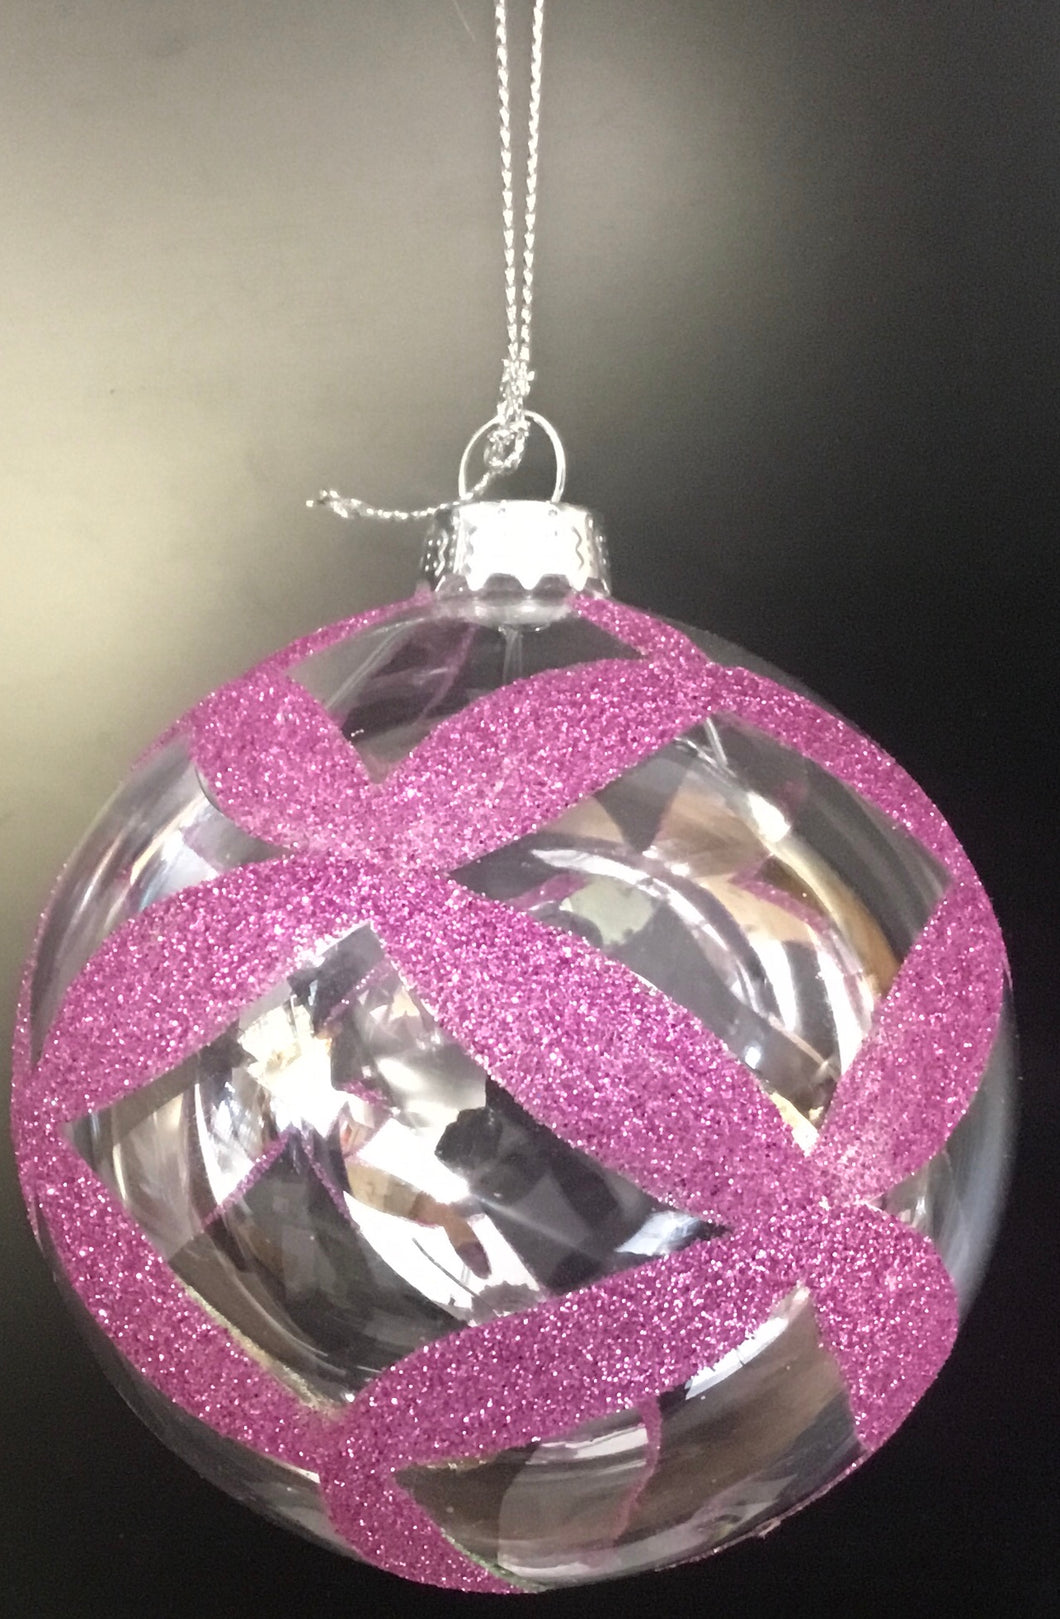 Clear bauble with purple glitter pattern